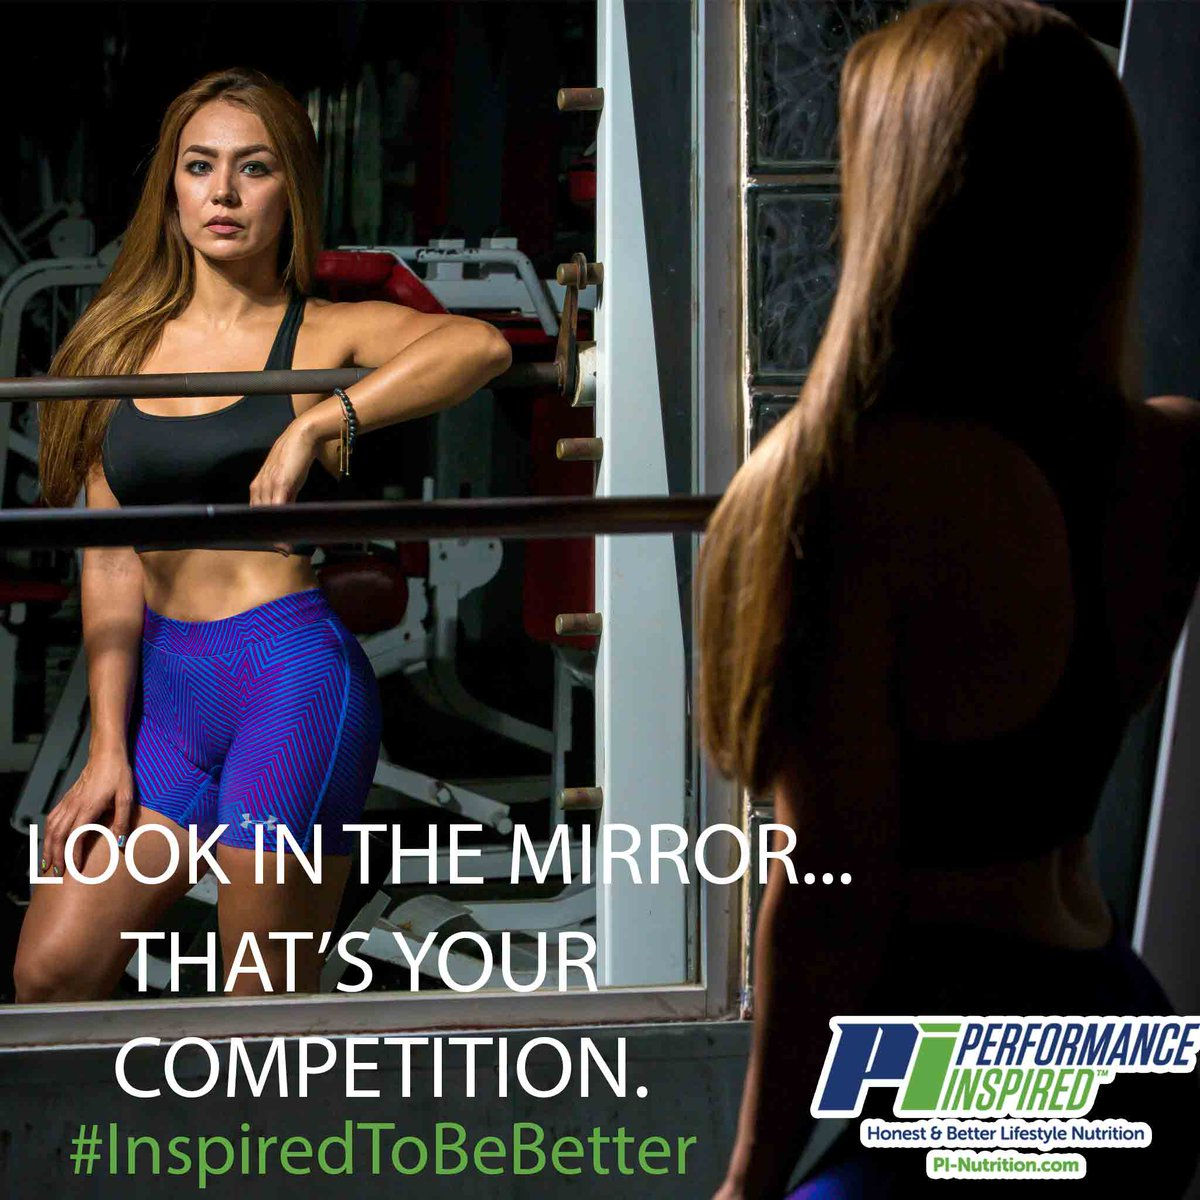 The best favor you can do for yourself is to be laser focused on your #healthy #goals. You have nothing without your #health! #ONELIFE #InspiredToBeBetter #F45 #Gym #Motivation #Focus #Fitness #Workout #Healthy #HealthIsWealth #Peloton  #FitnessMotivation #BeBetter #FitFam